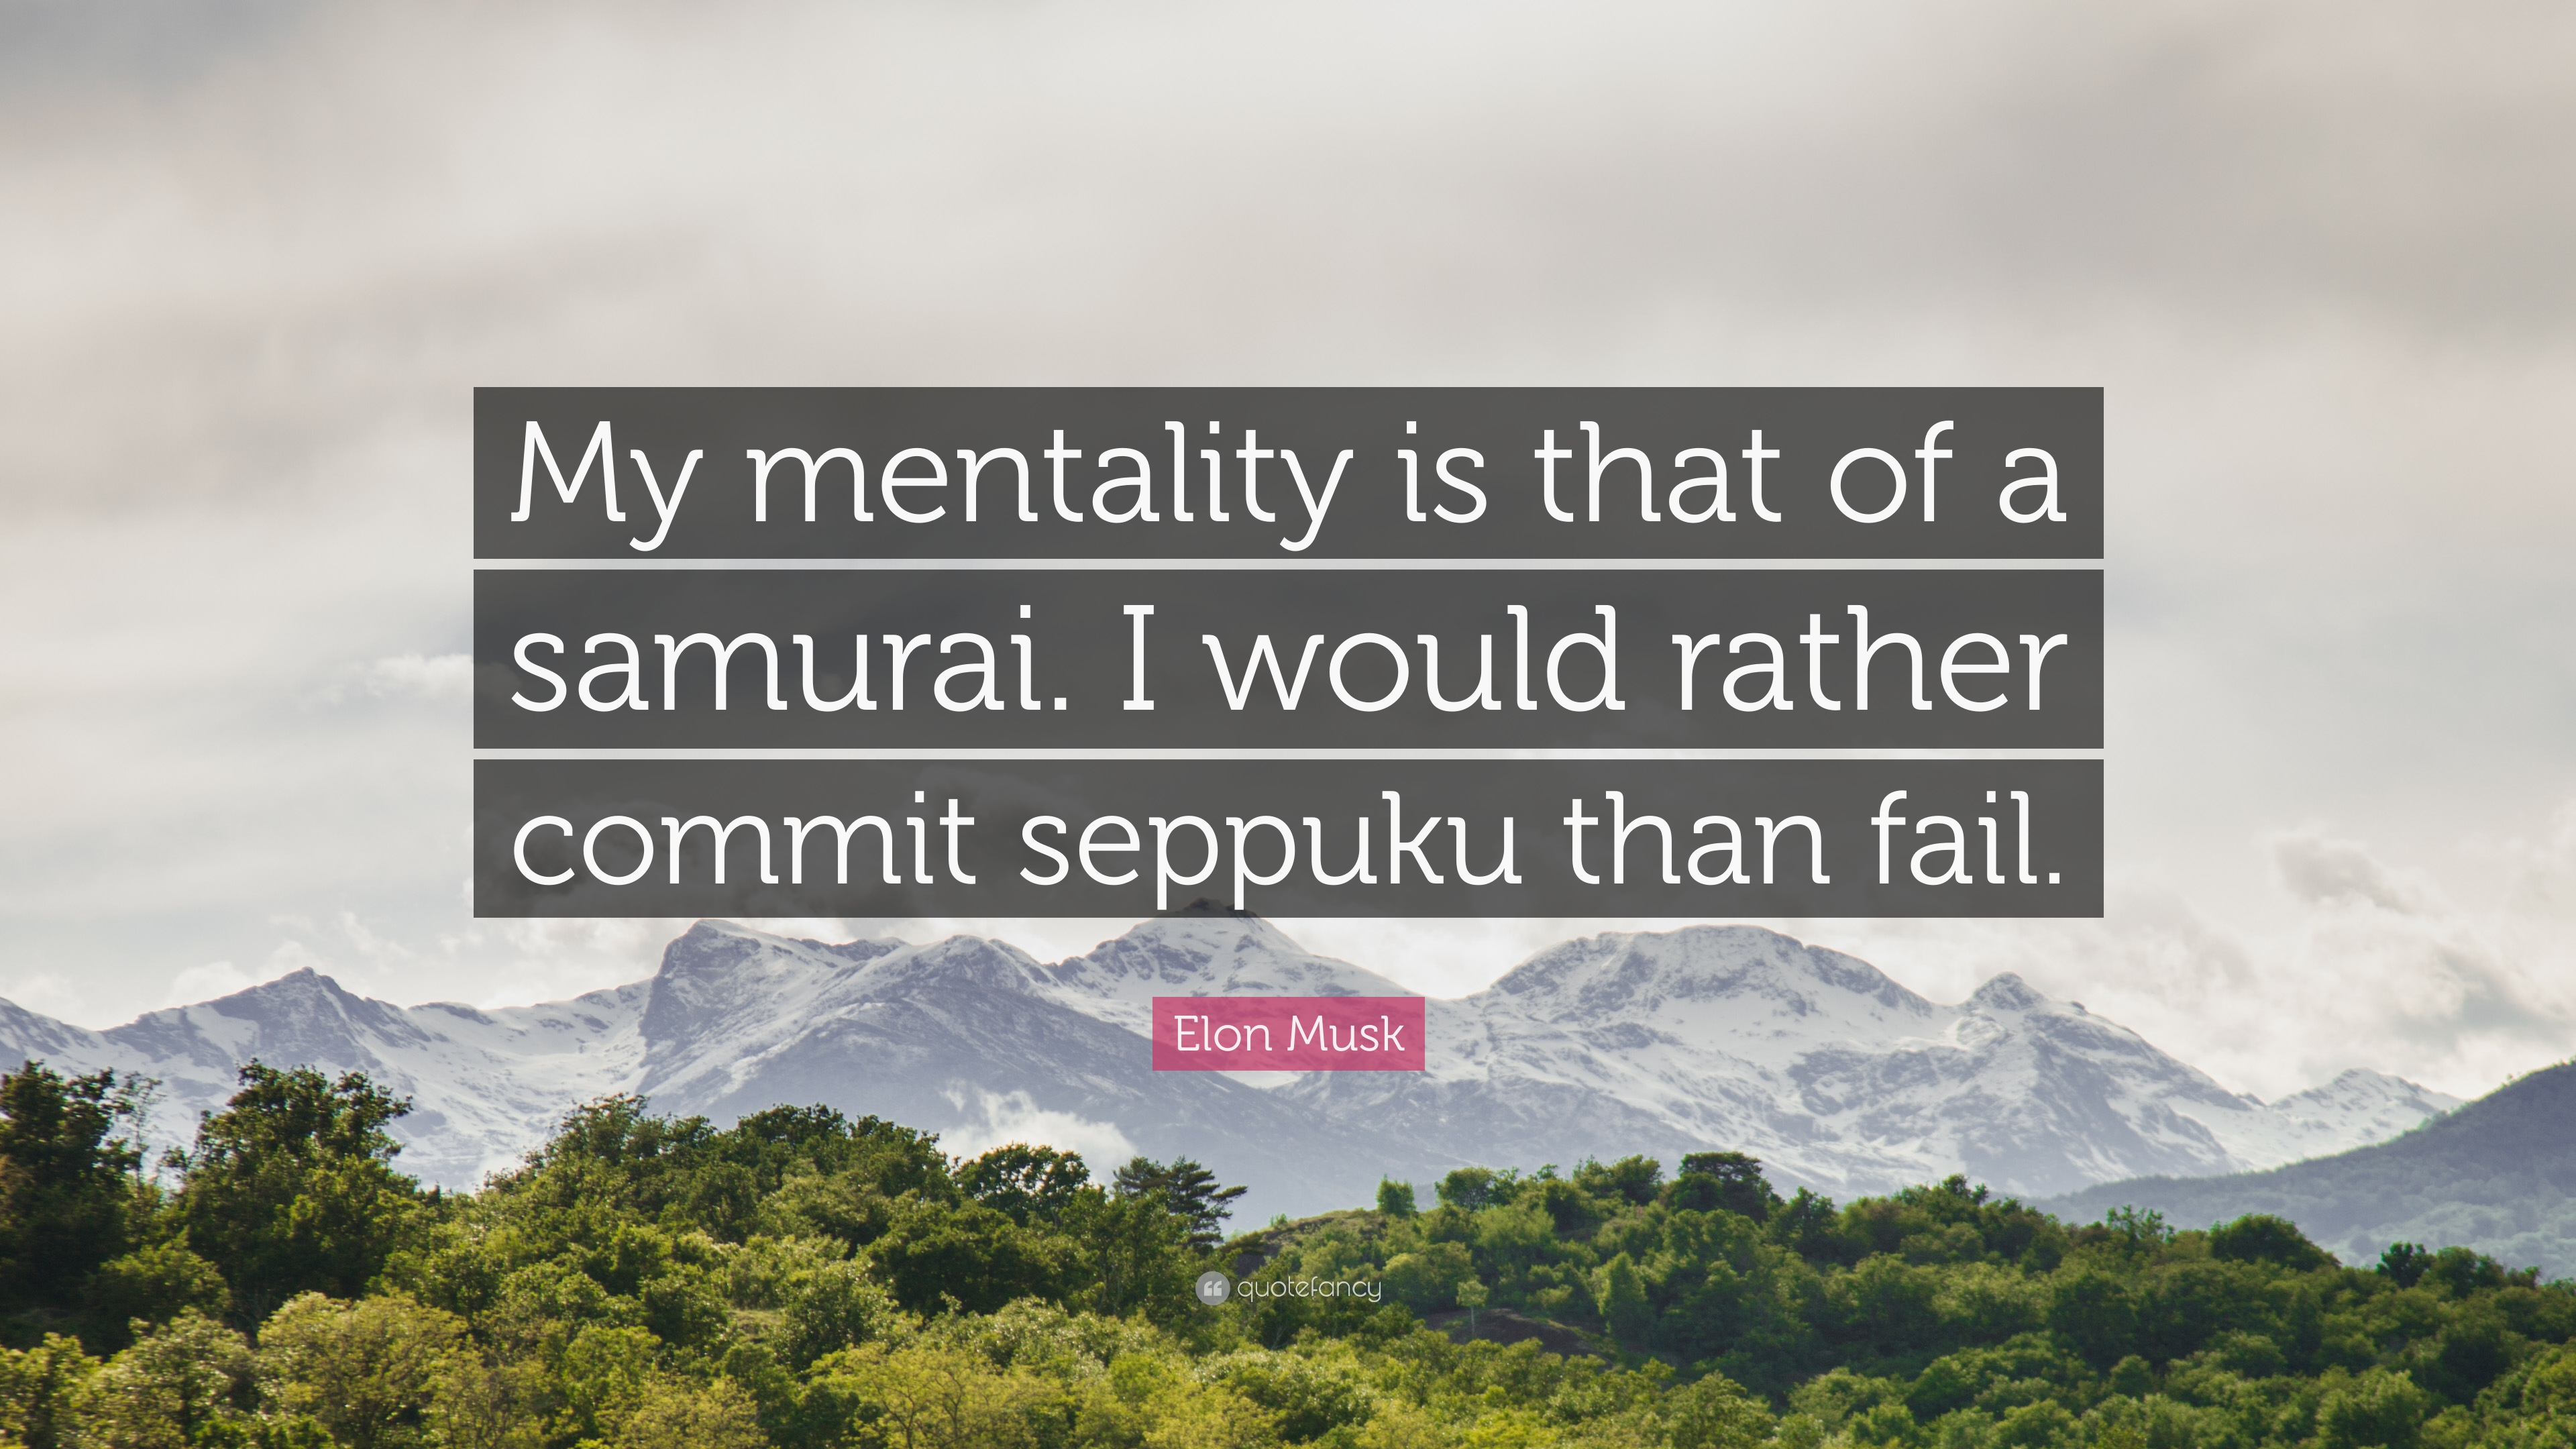 elon musk quote my mentality is that of a samurai i would rather